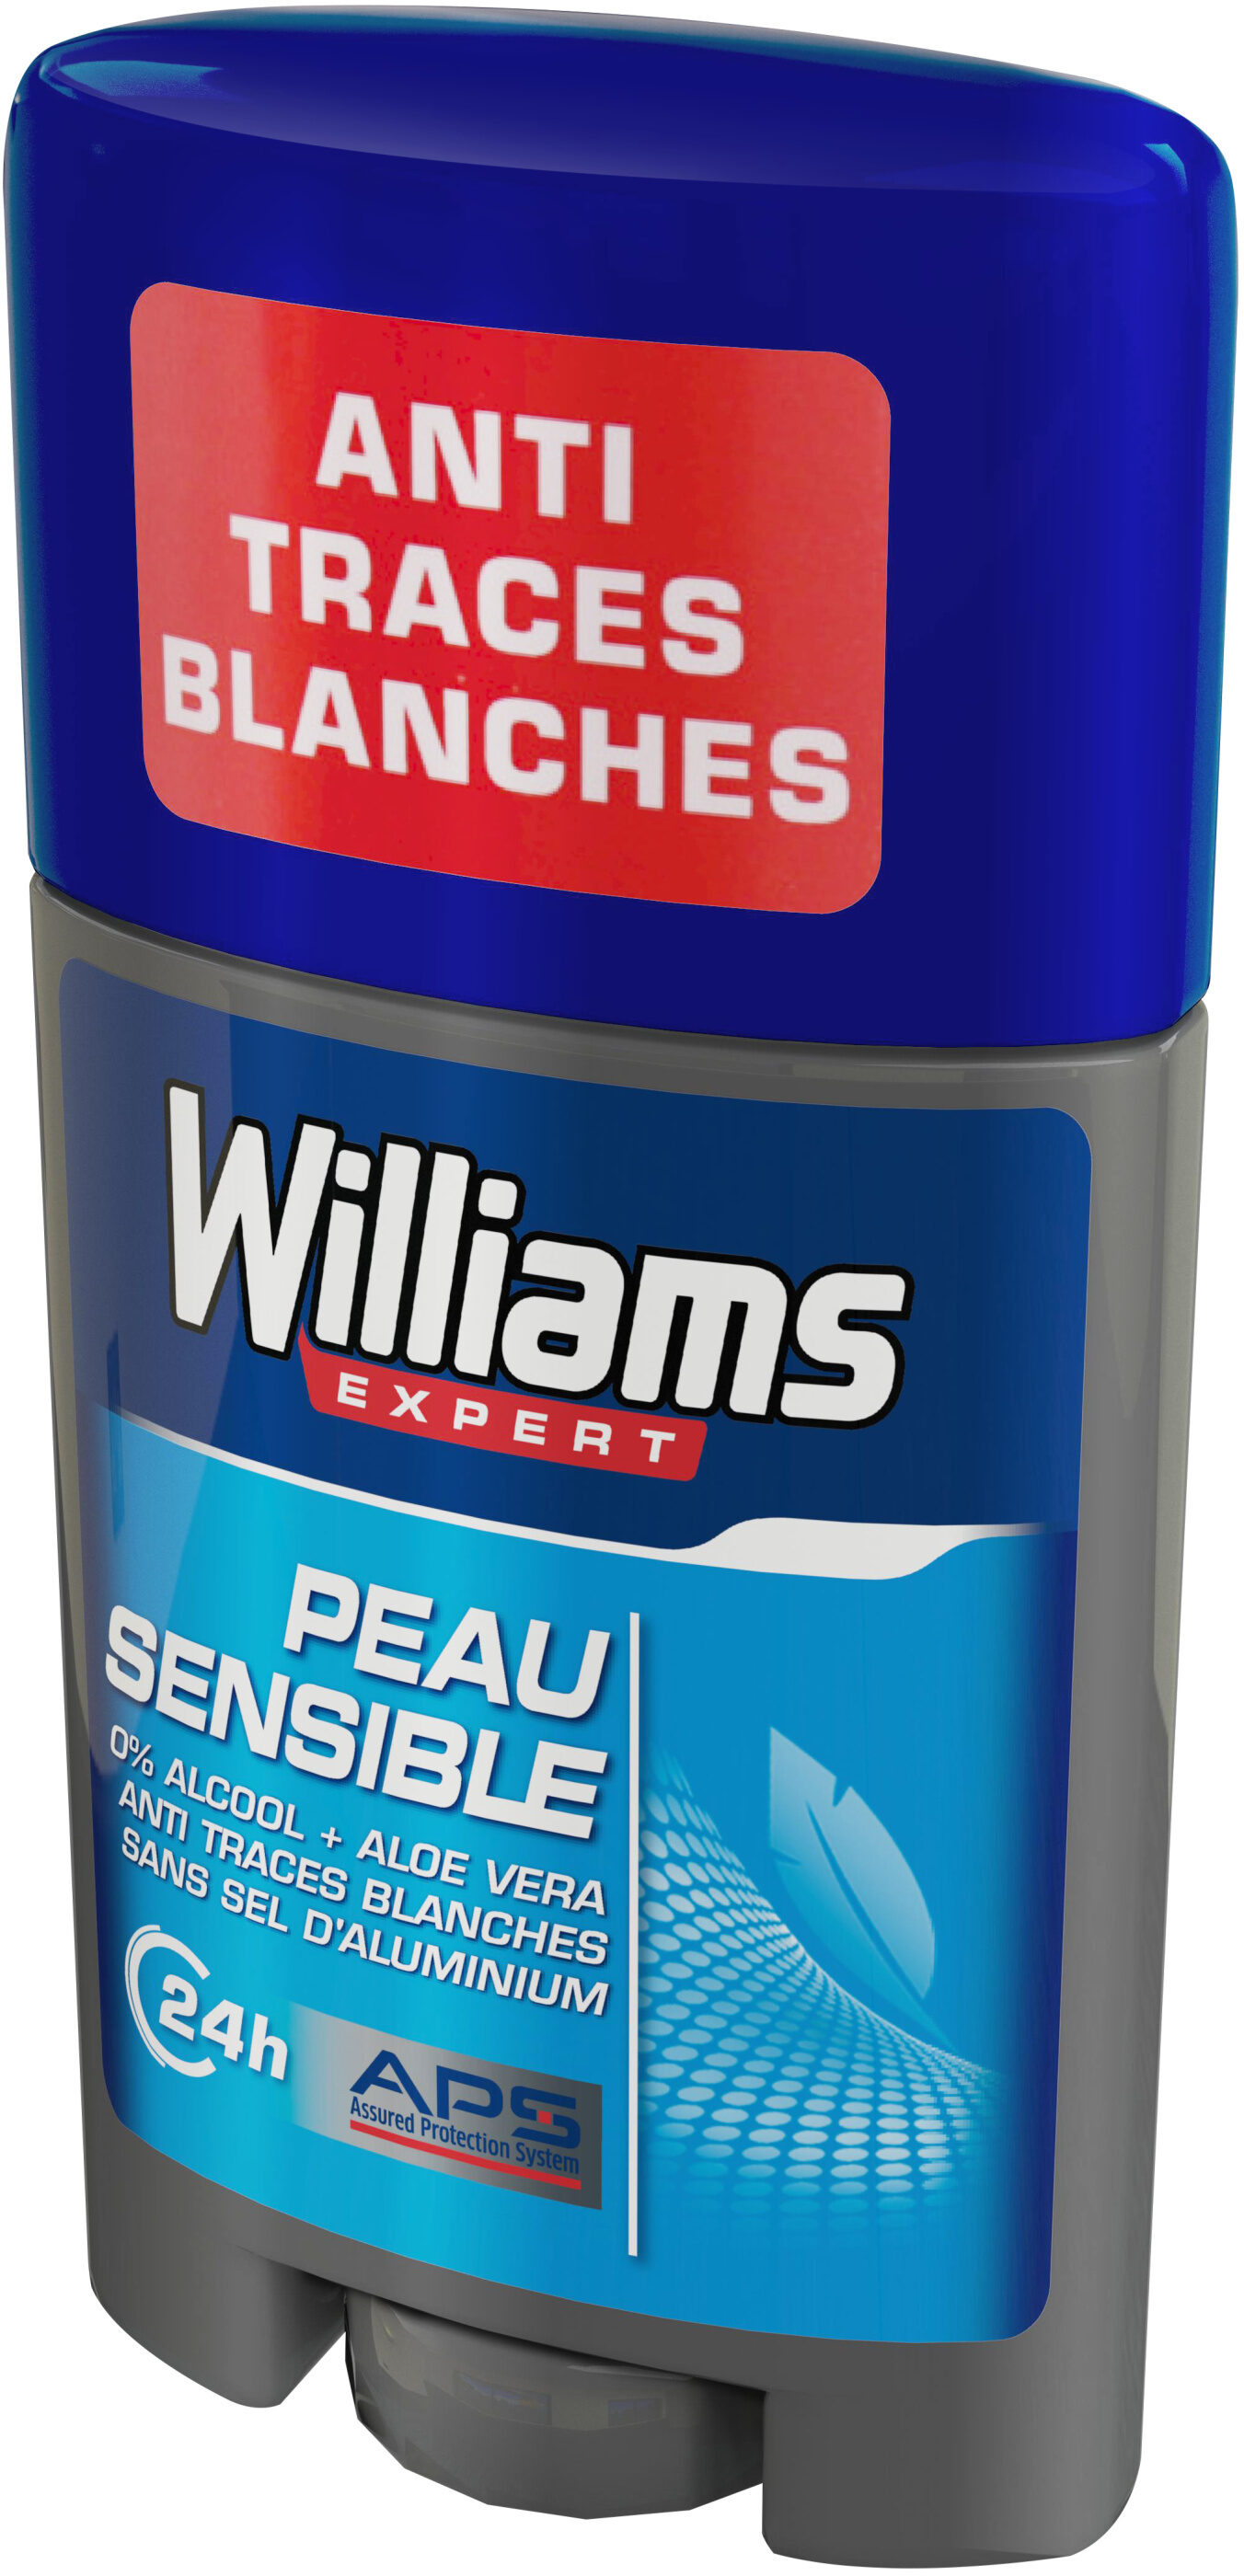 Williams Déodorant Homme Stick Peau Sensible - Product - fr